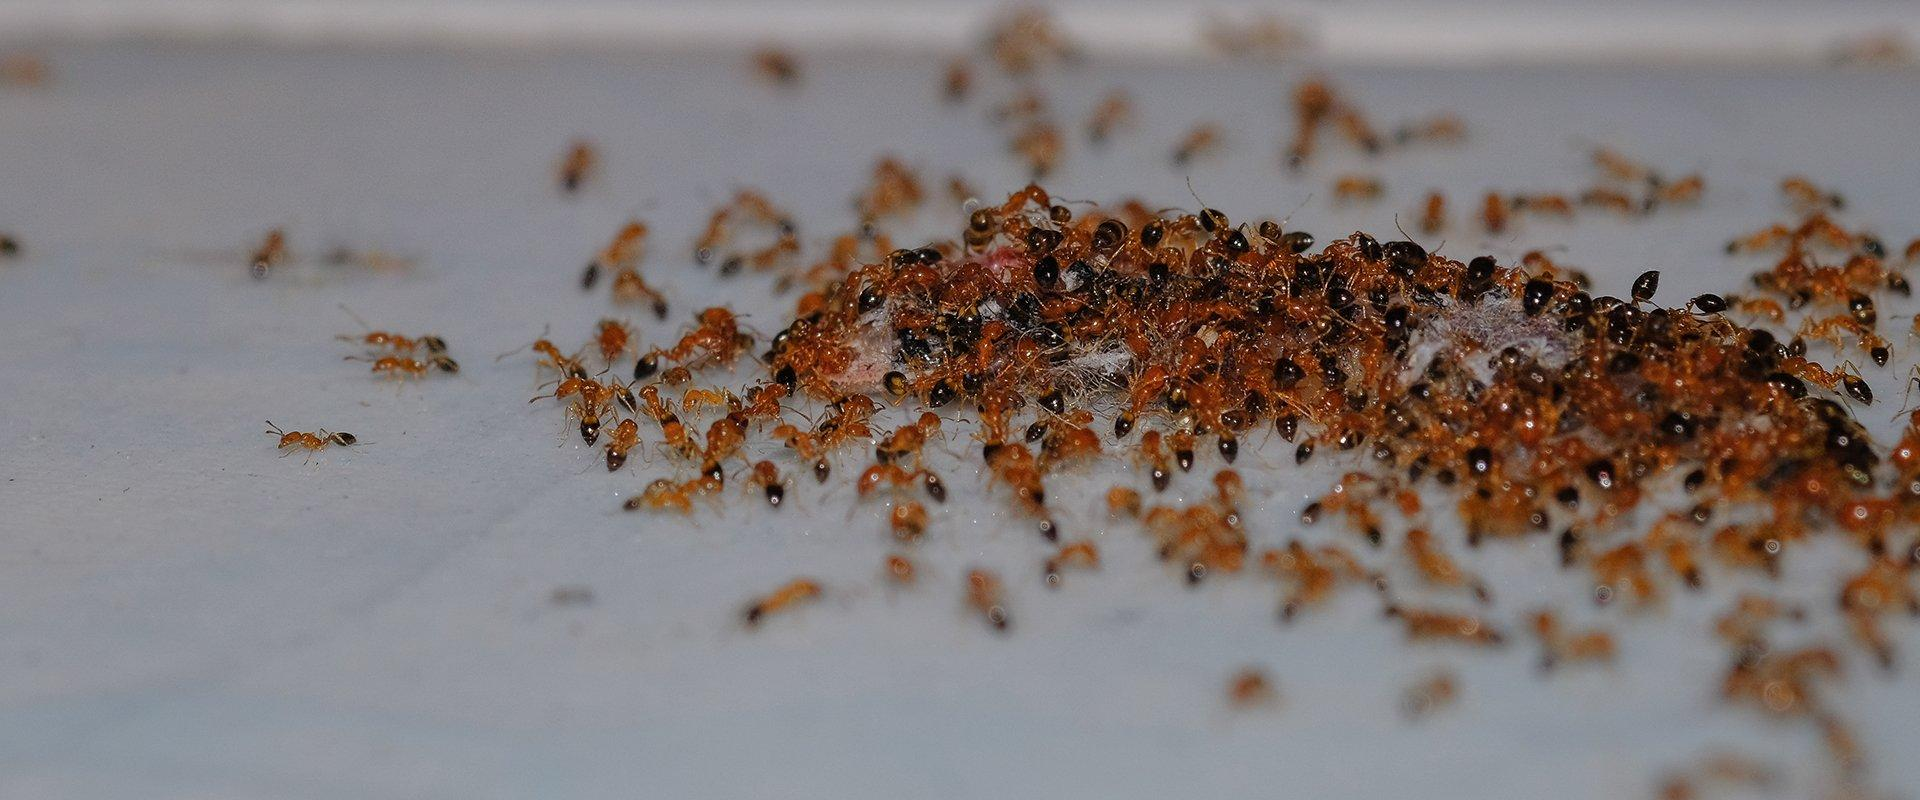 a large group of ants